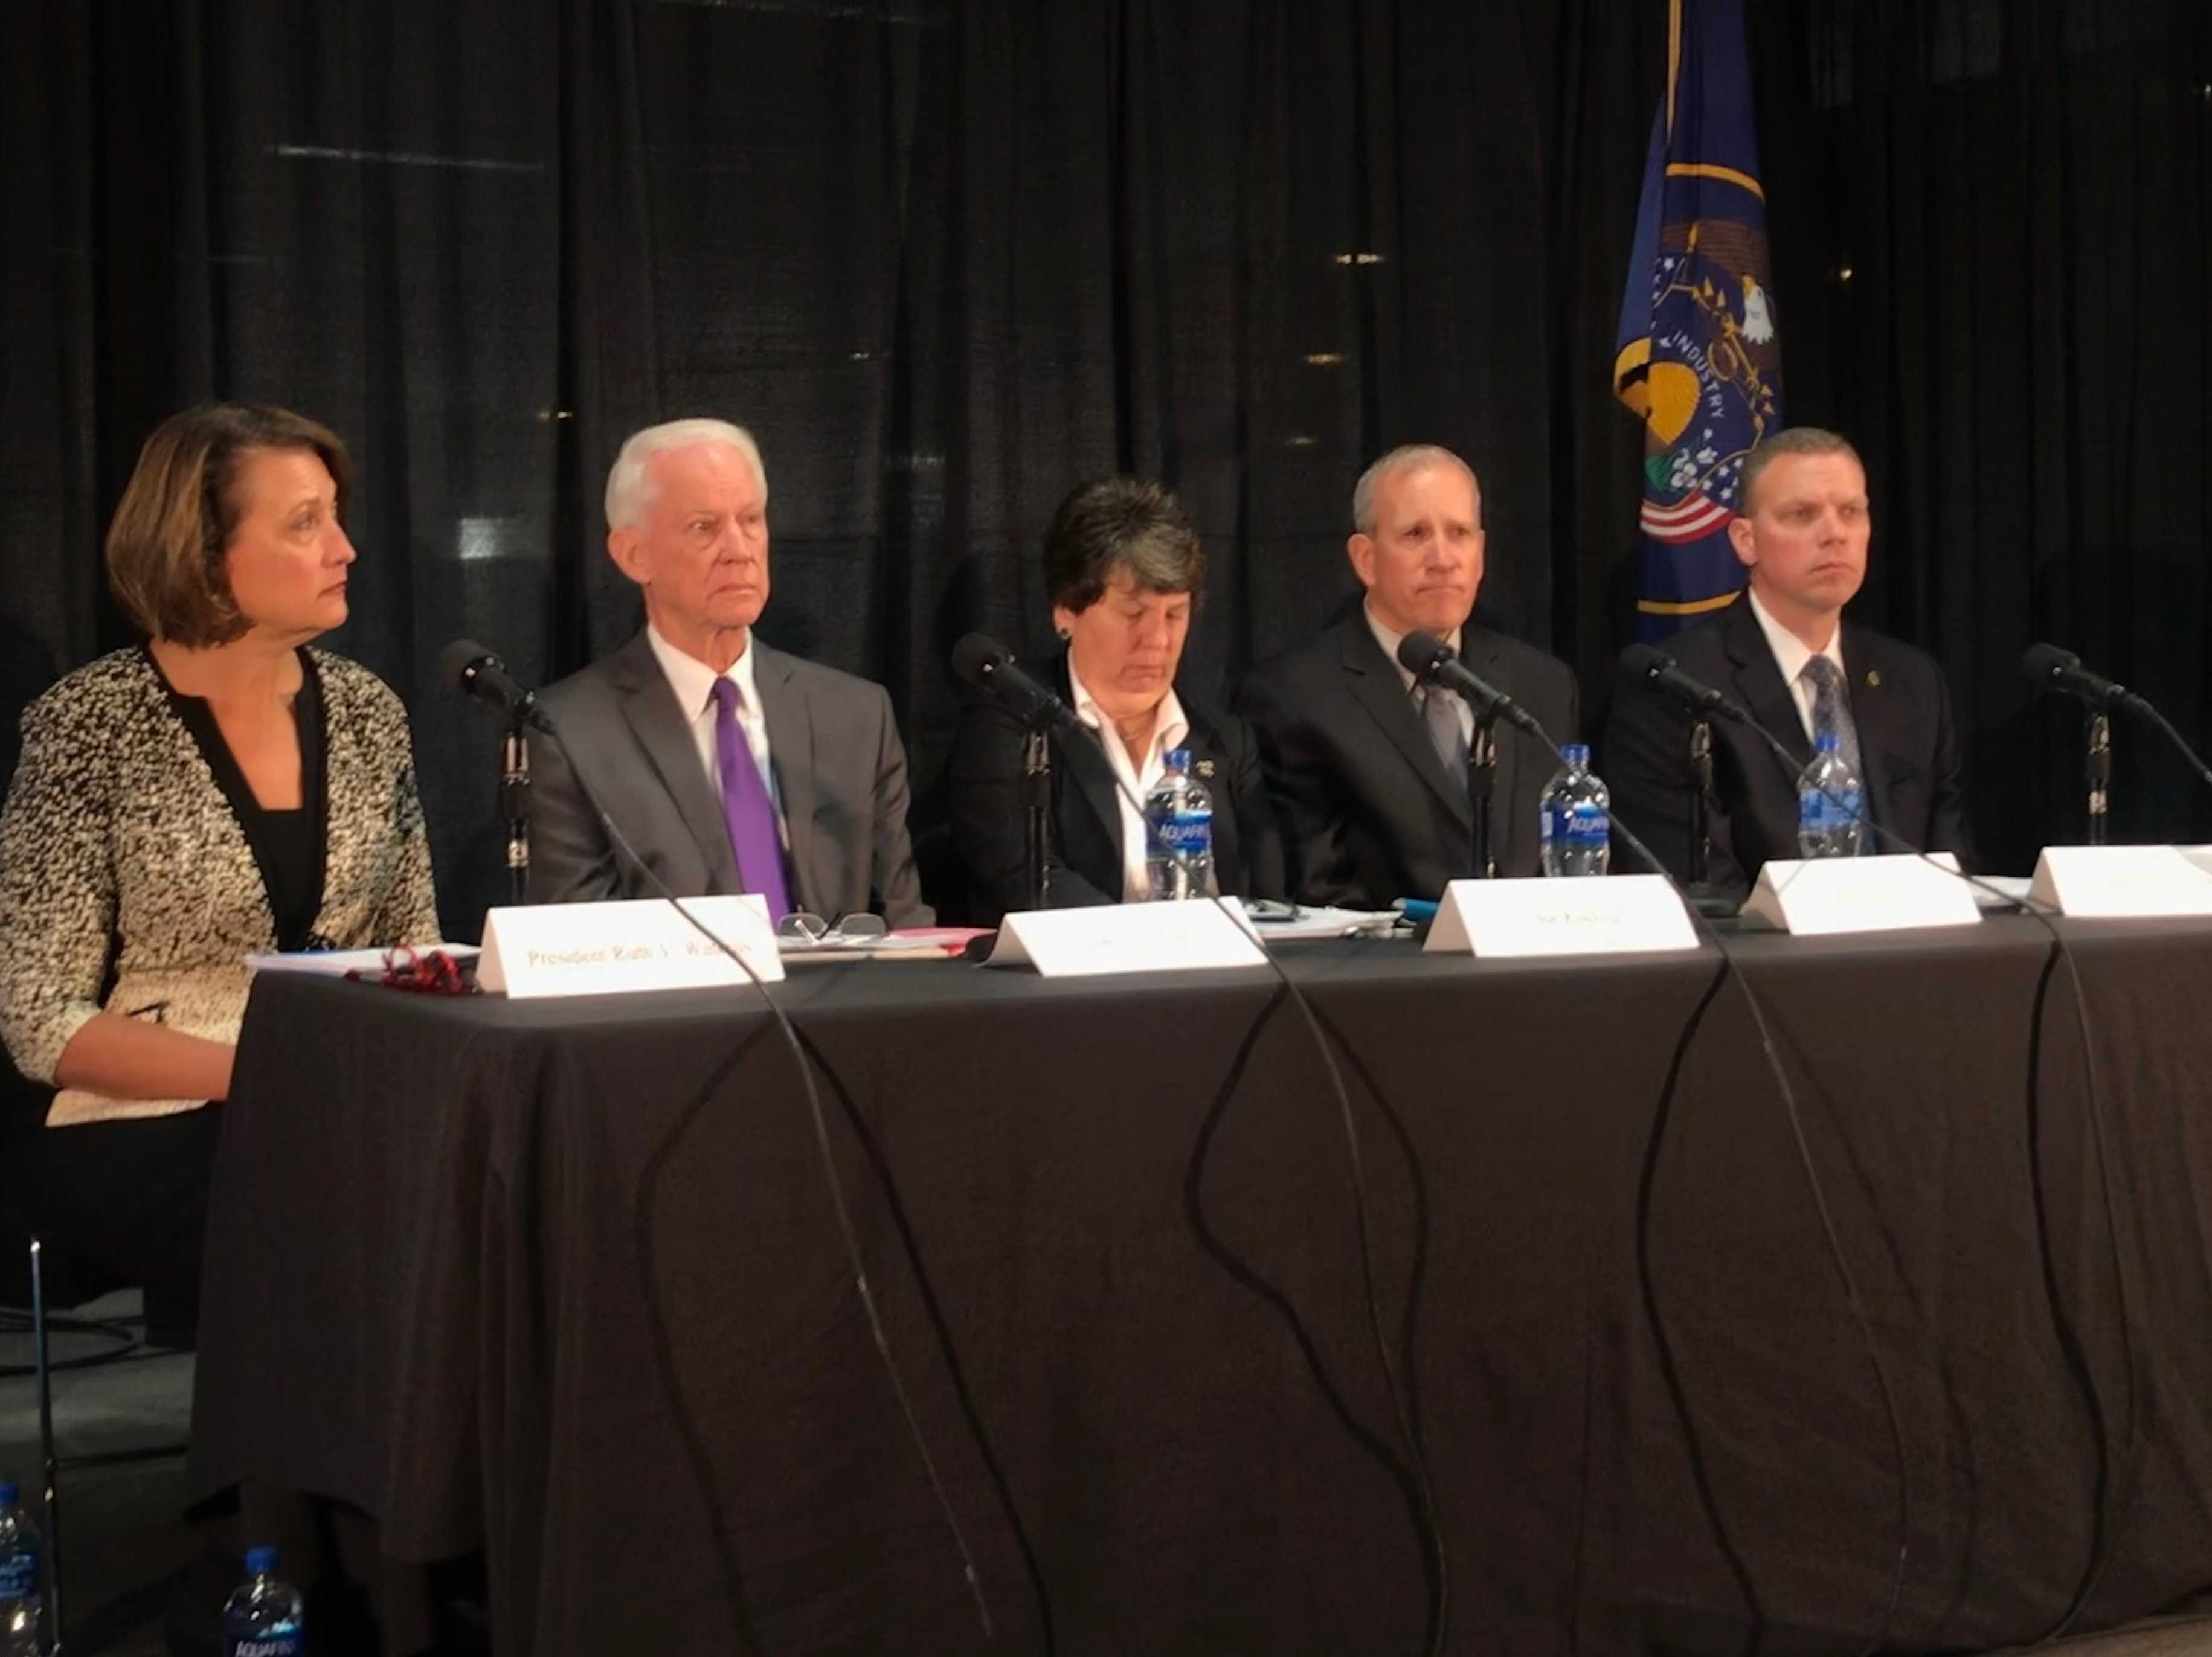 Officials announce the results of two independent investigations into the University of Utah's police department and the State justice system after the on-campus murder of student Lauren McCluskey. Pictured from left to right: President Ruth Watkins, former Public Safety Commissioner John T. Nielsen, Executive Director of the International Association of Campus Law Enforcement Administrators Sue Riseling, former Public Safety Commissioner Keith Squires, and current Public Safety Commissioner Jess L. Anderson. | Photo by Elise Vandersteen Bailey